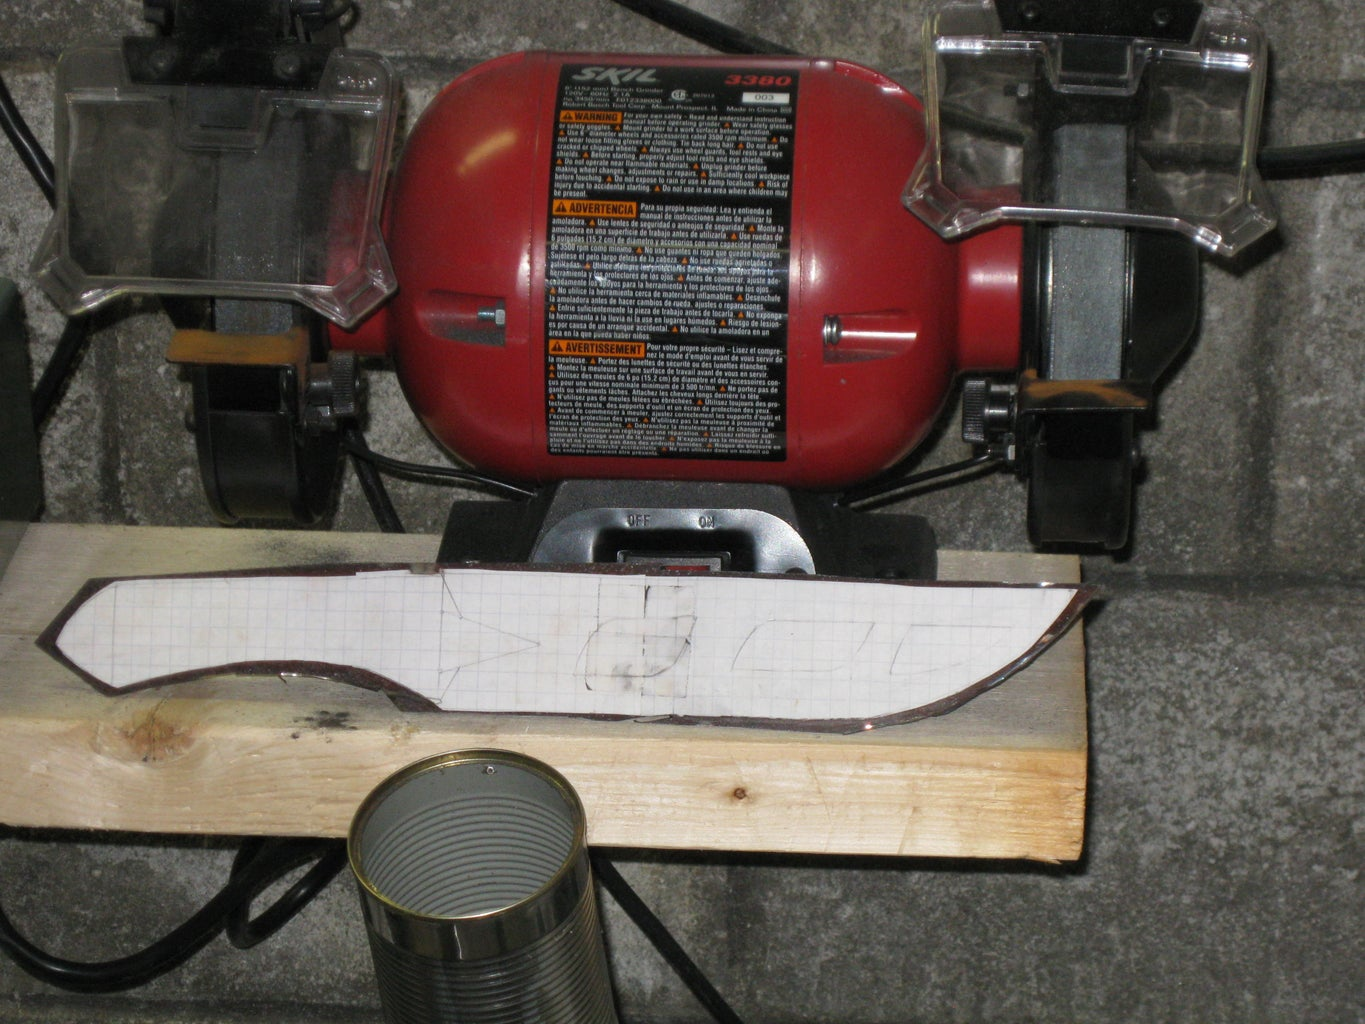 Making the Blade: Grinding the Shape